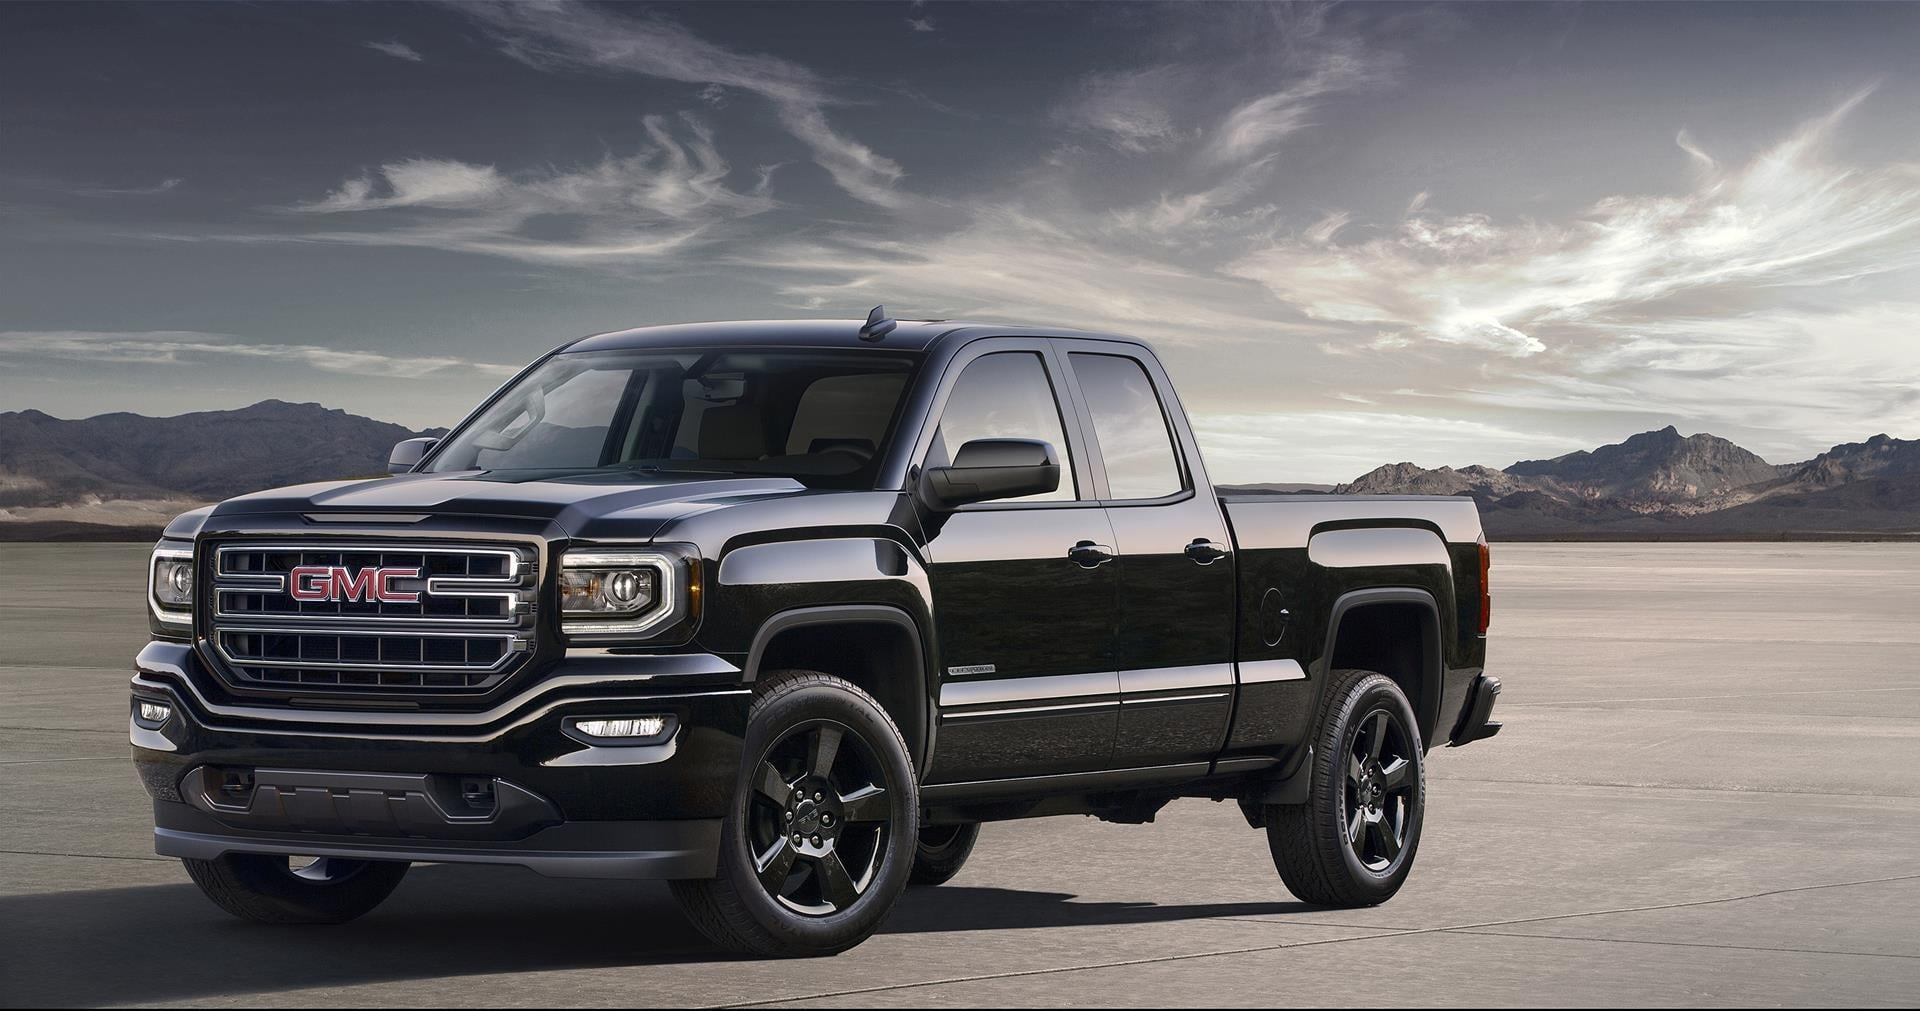 GMC Sierra Wallpapers and Background Images   stmednet 1920x1011